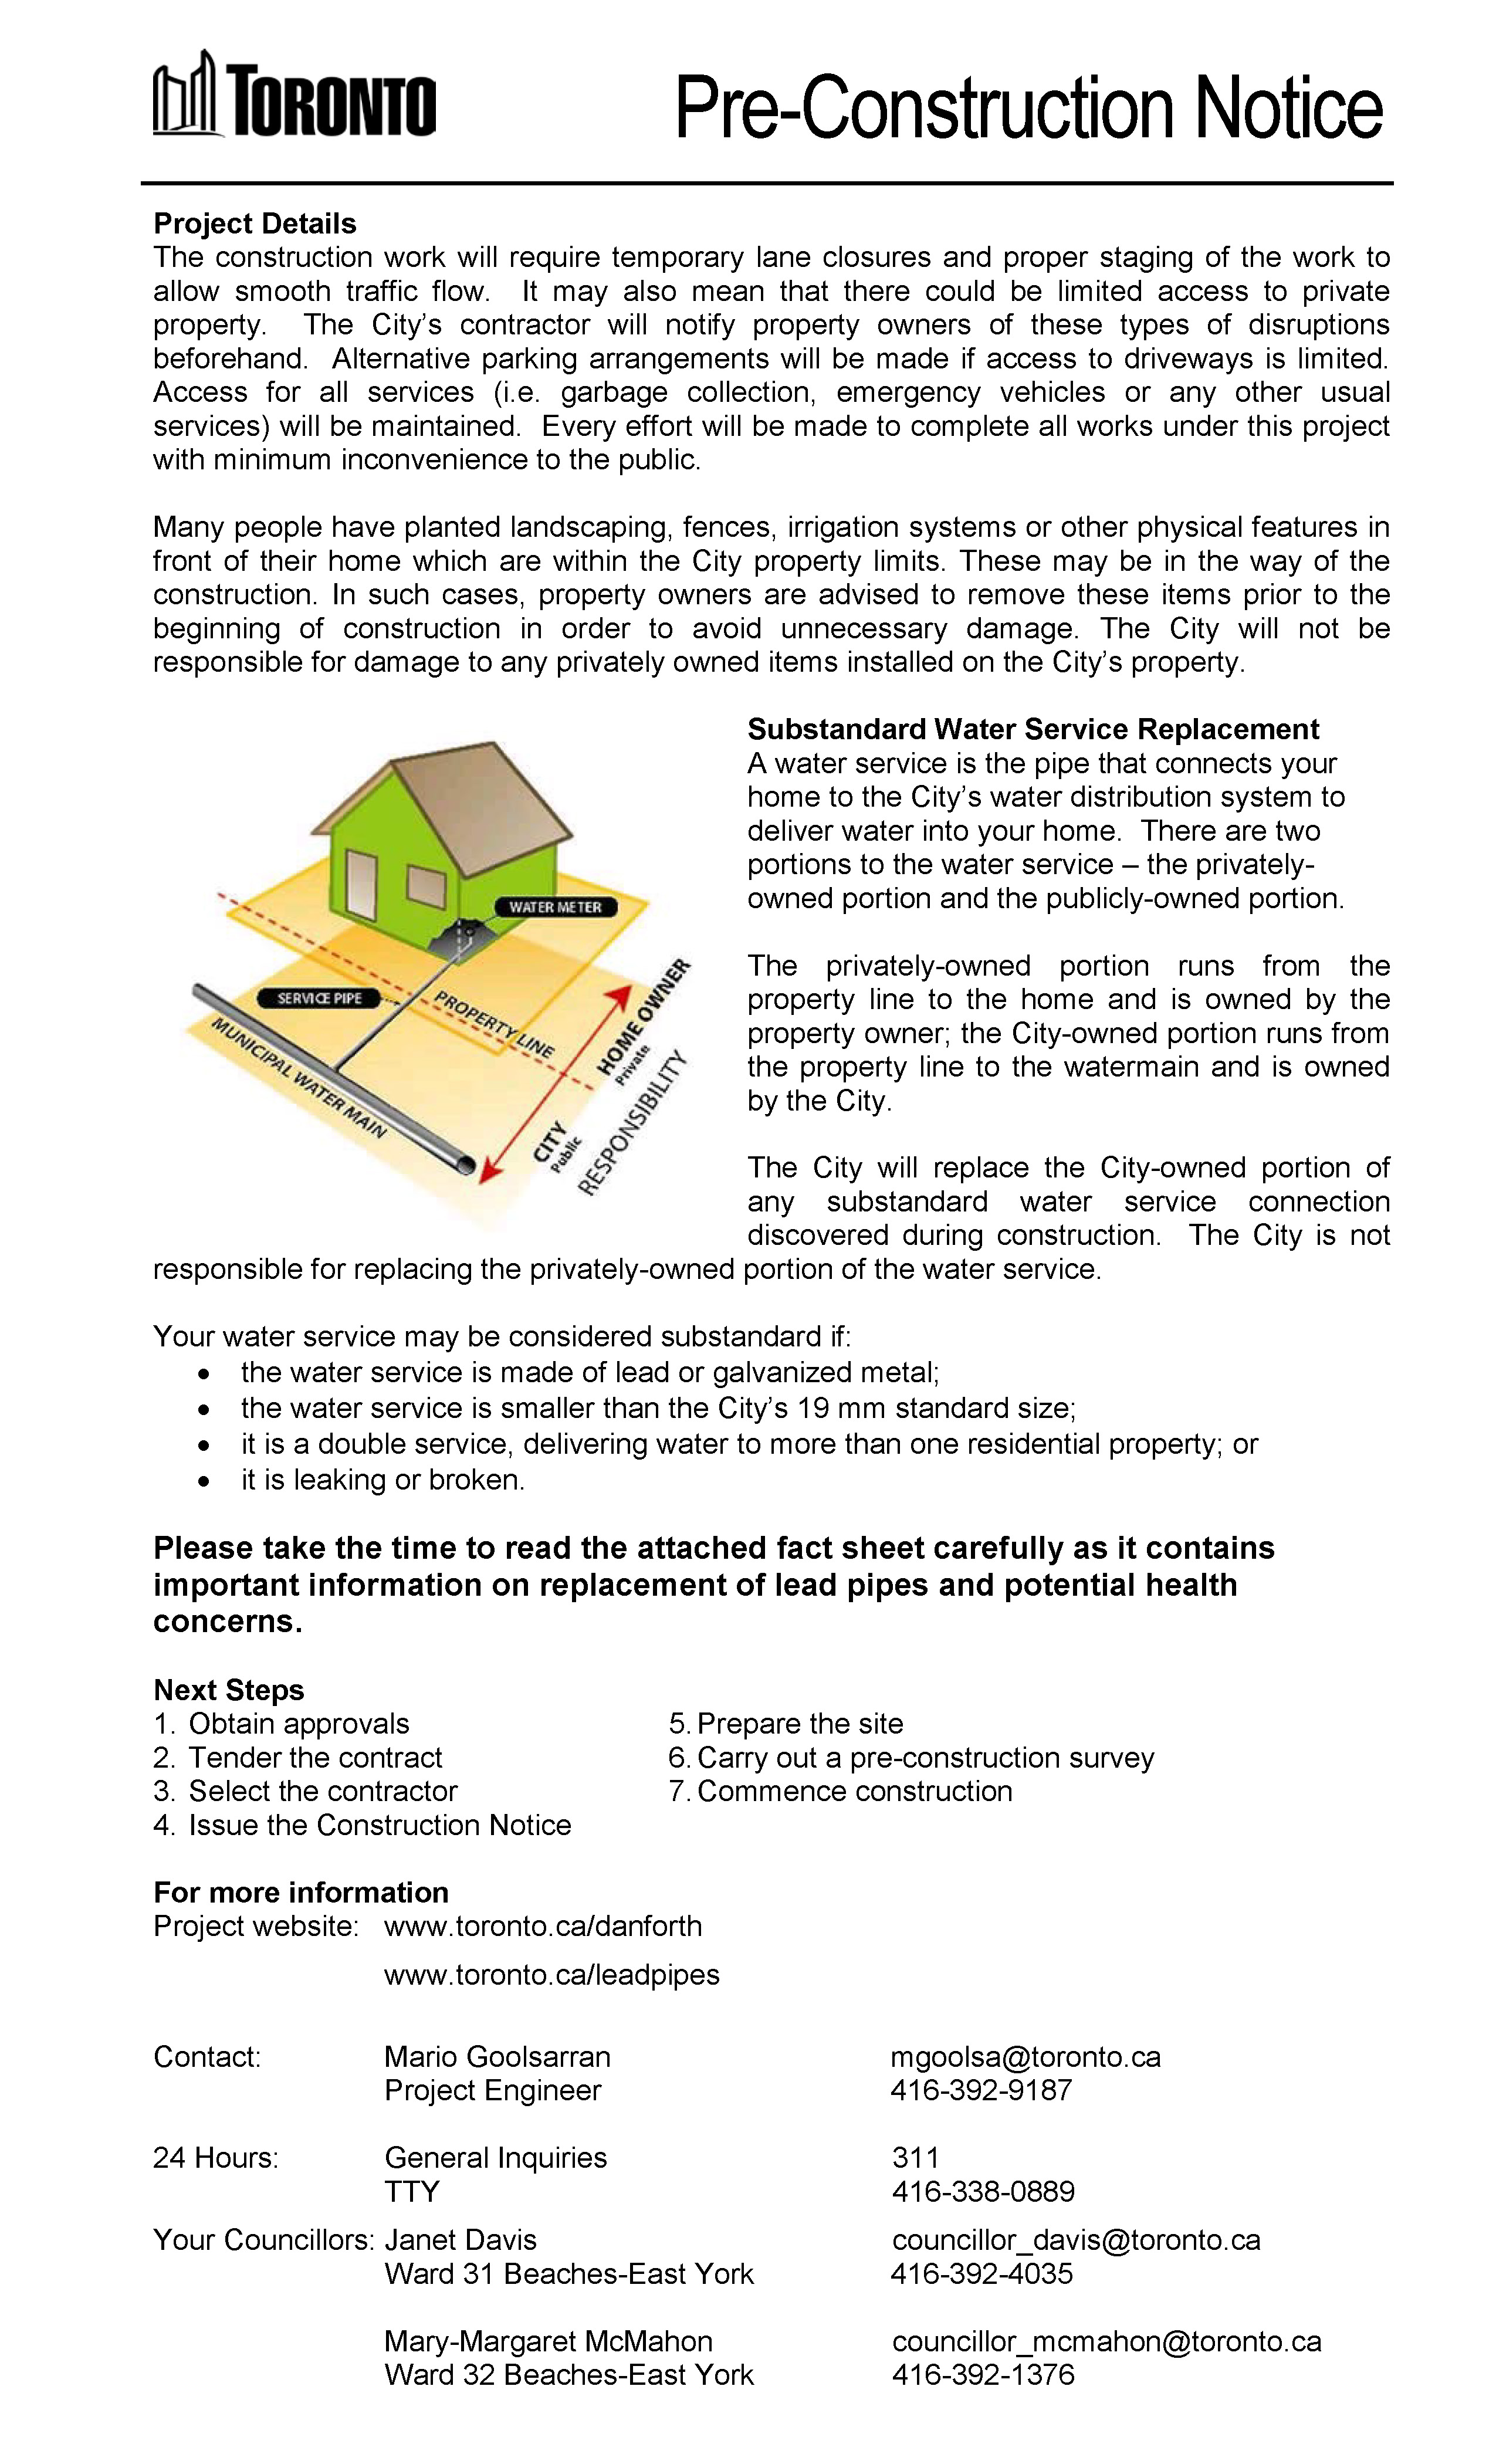 Pre-Construction Notice for Watermain Replacement_Page_2